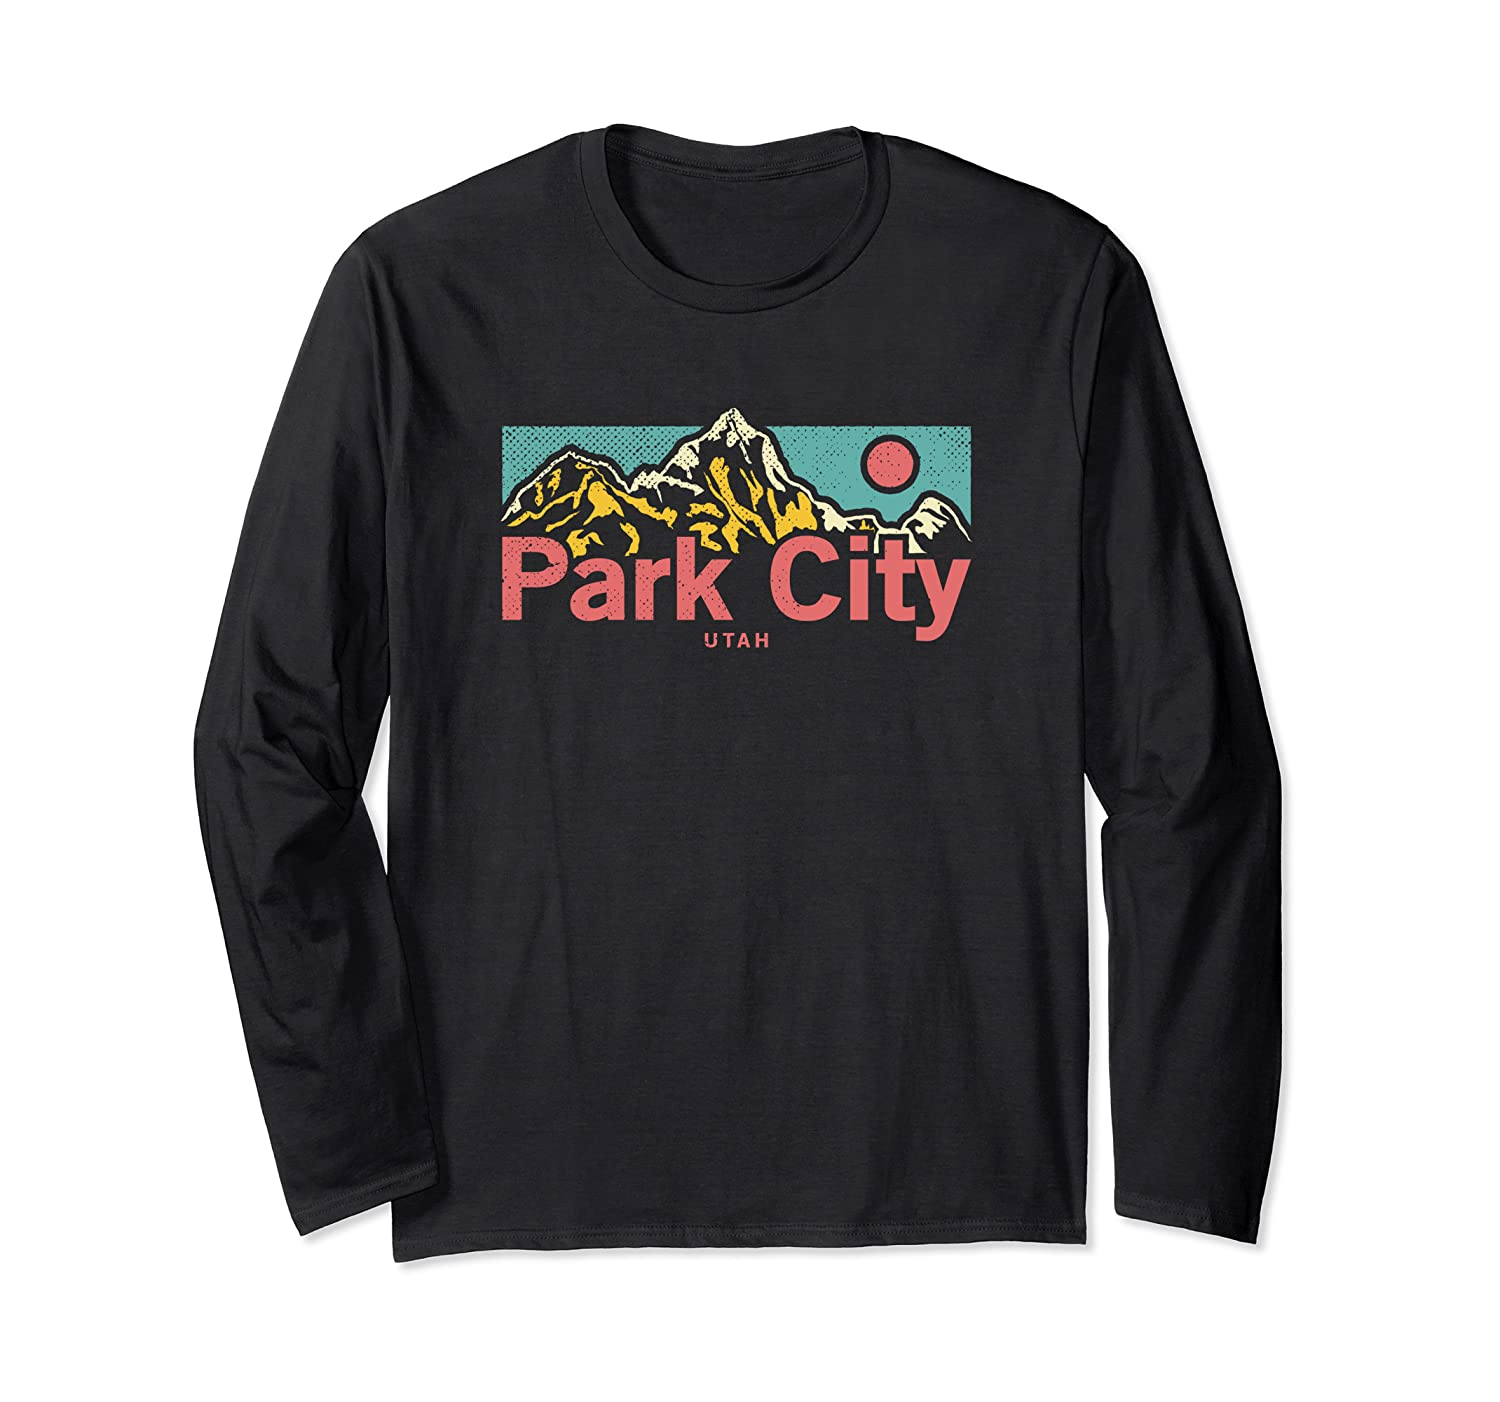 Vintage Park City Utah Outdoor Graphic Long Sleeve T-Shirt Unisex Tshirt